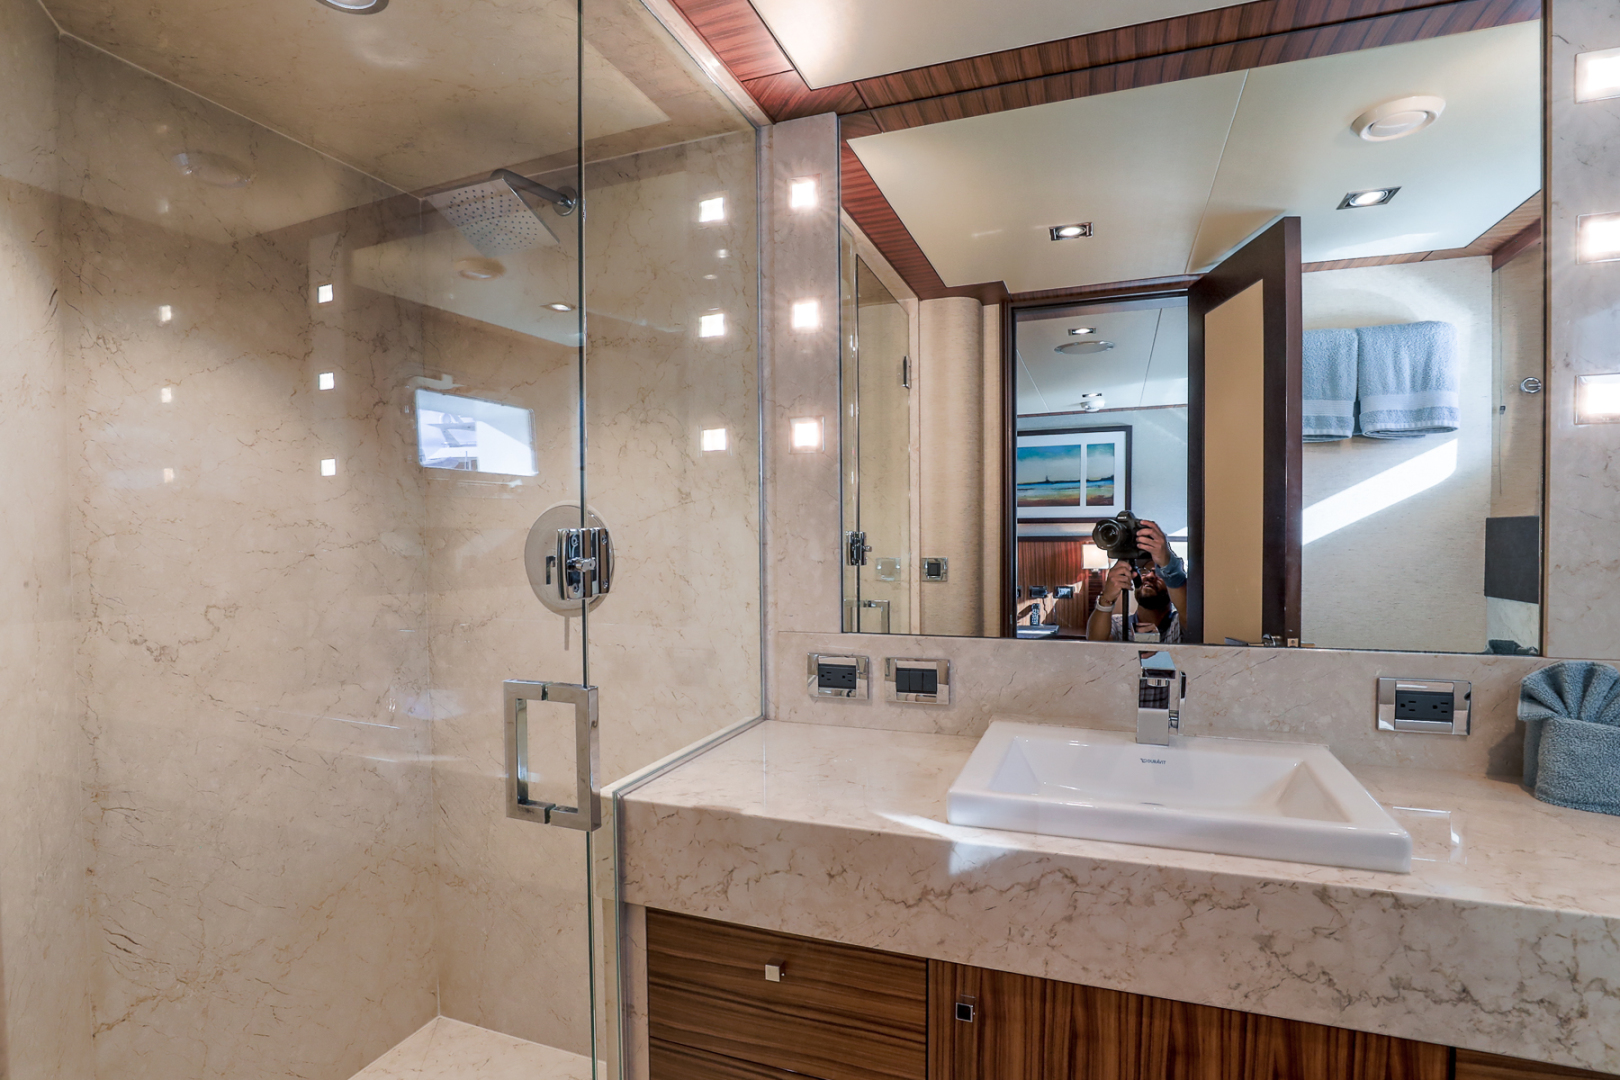 Northcoast-NC125 2011-FUGITIVE *Name Reserved* West Palm Beach-Florida-United States-Starboard Guest Bath-1513477 | Thumbnail